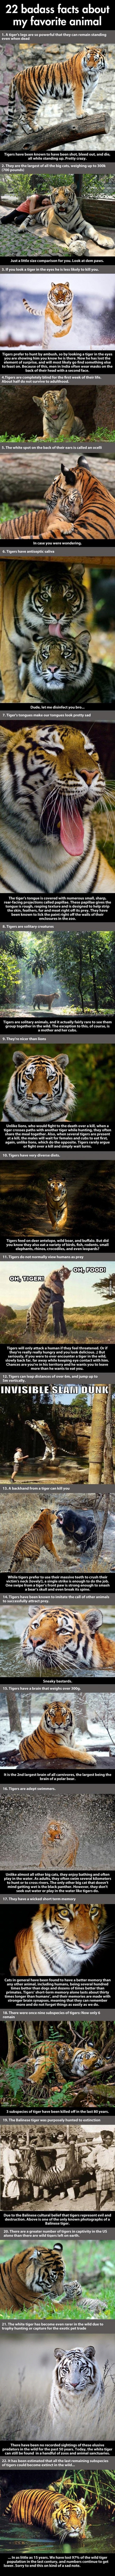 facts-about-tigers-446x9999